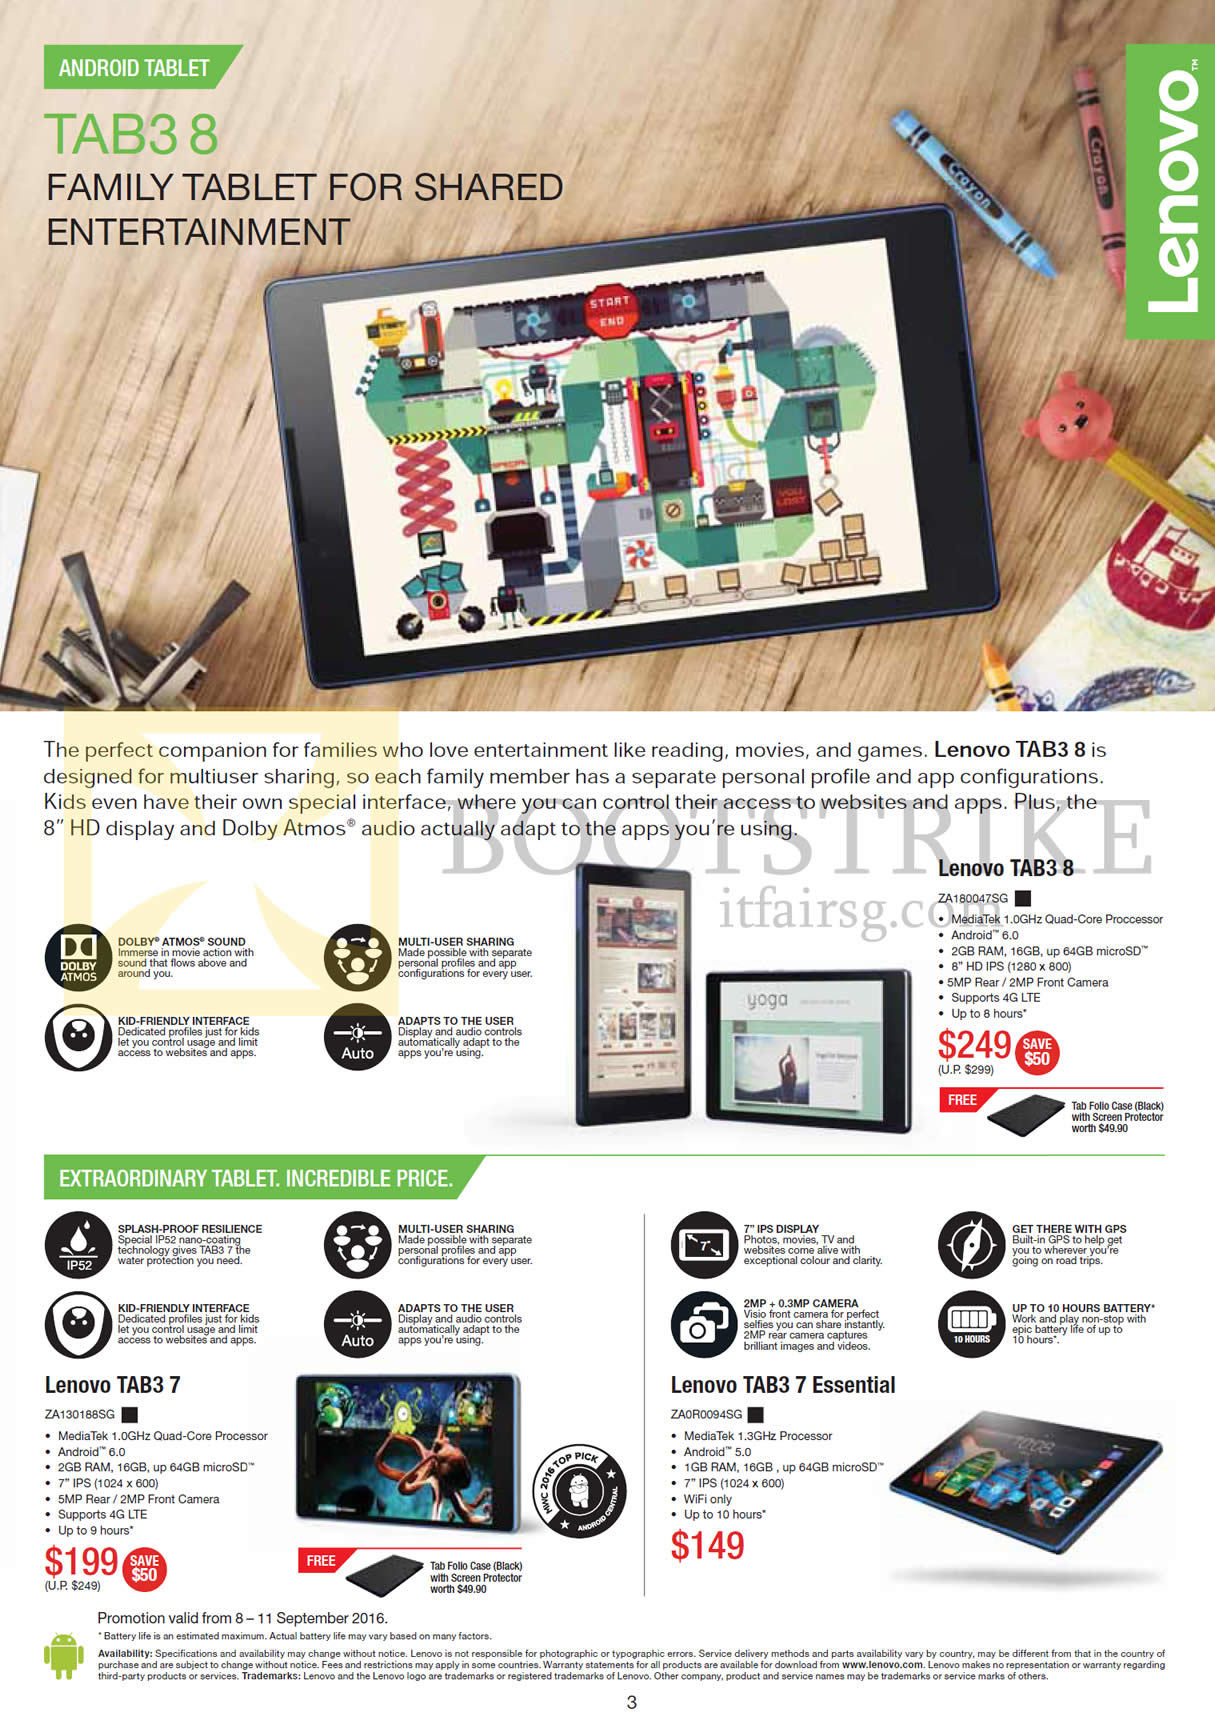 COMEX 2016 price list image brochure of Lenovo Tablets Tab3 7, Tab3 7 Essential